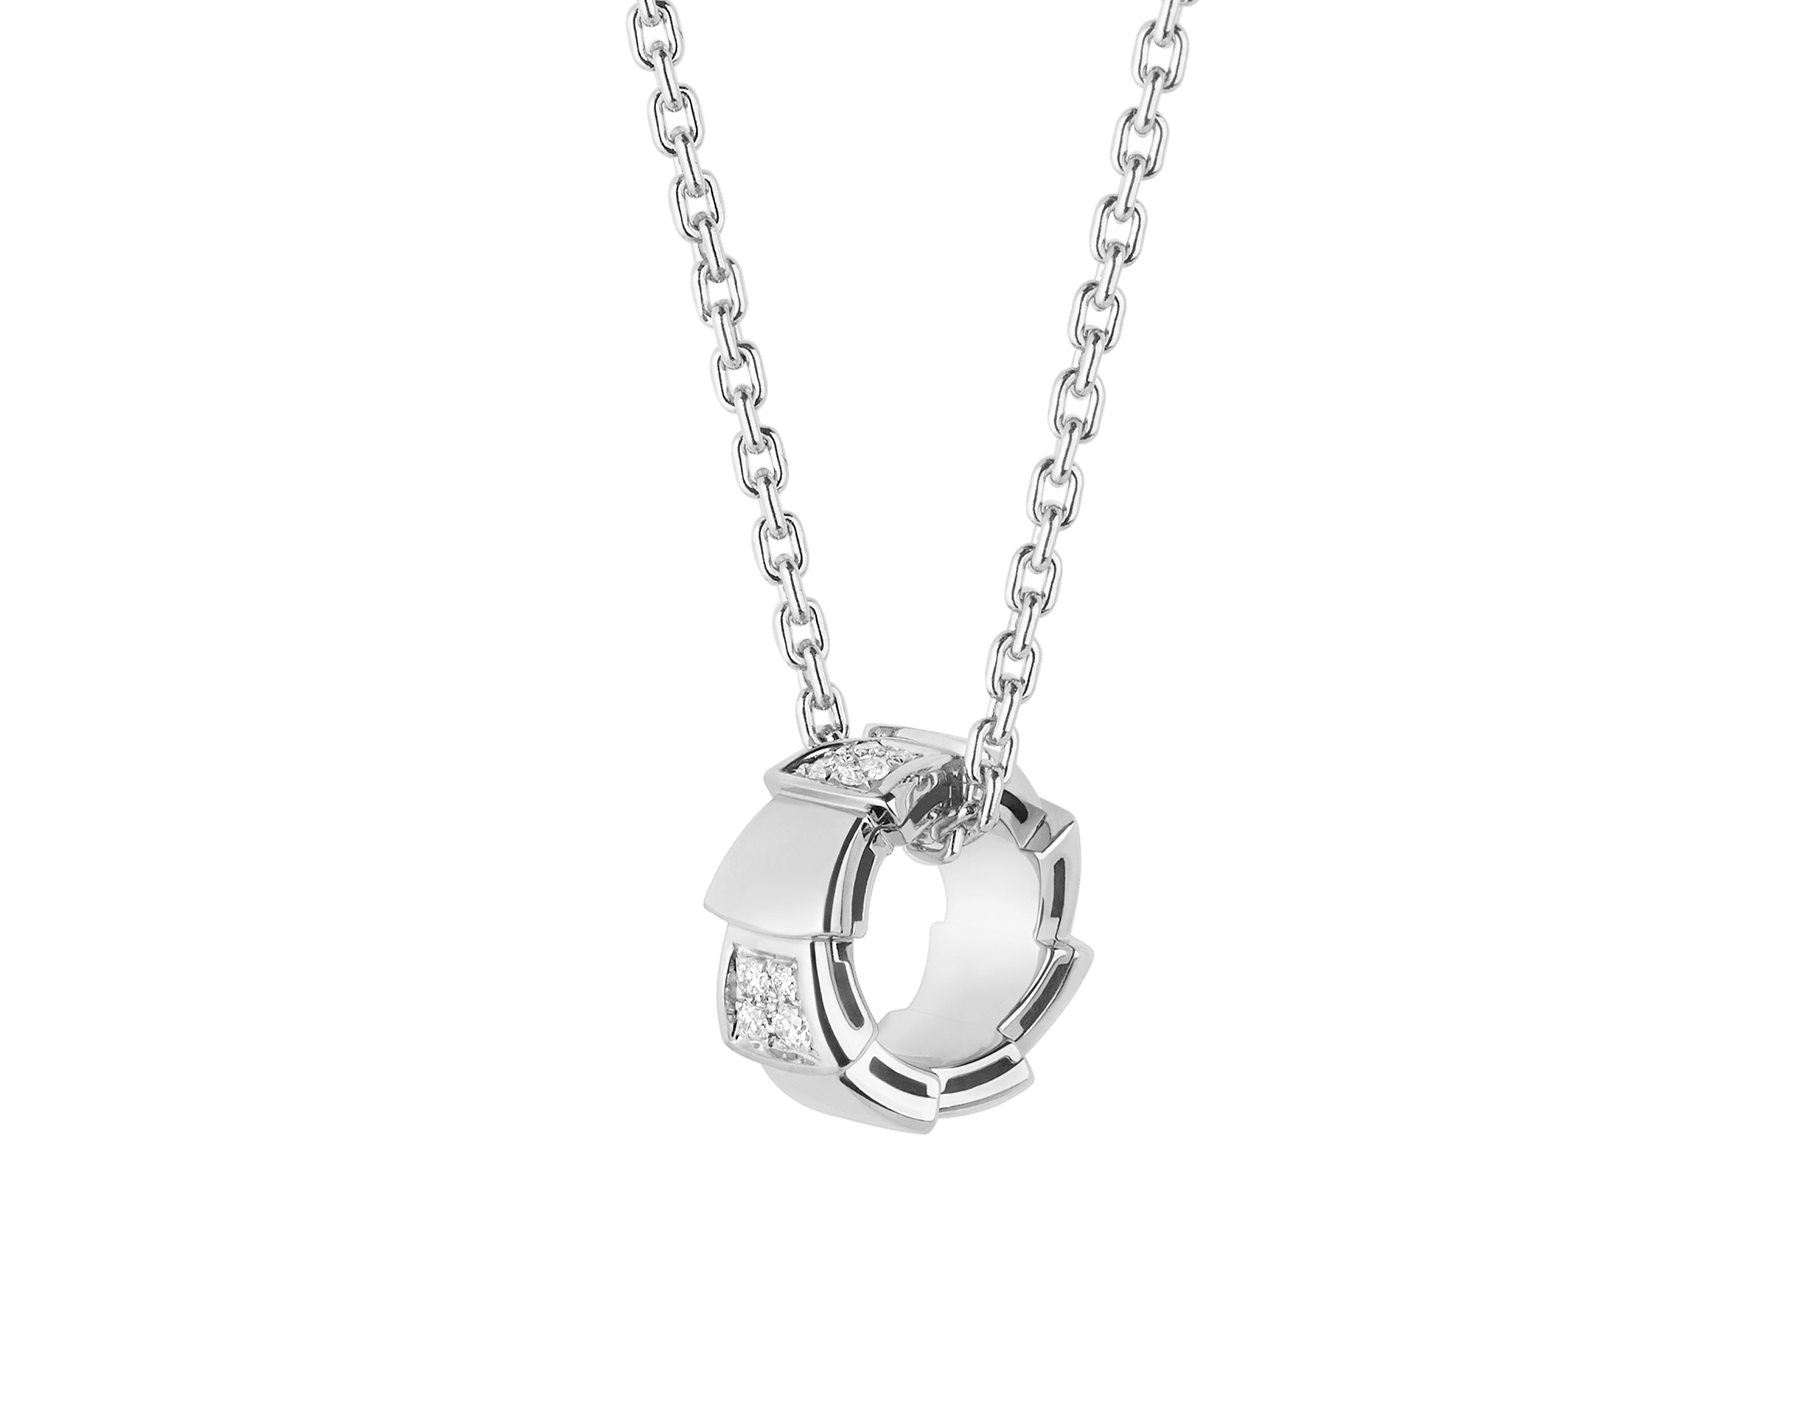 Serpenti Viper necklace with 18 kt white gold chain and 18 kt white gold pendant set with demi pavé diamonds.(0.21 ct) 355255 image 1